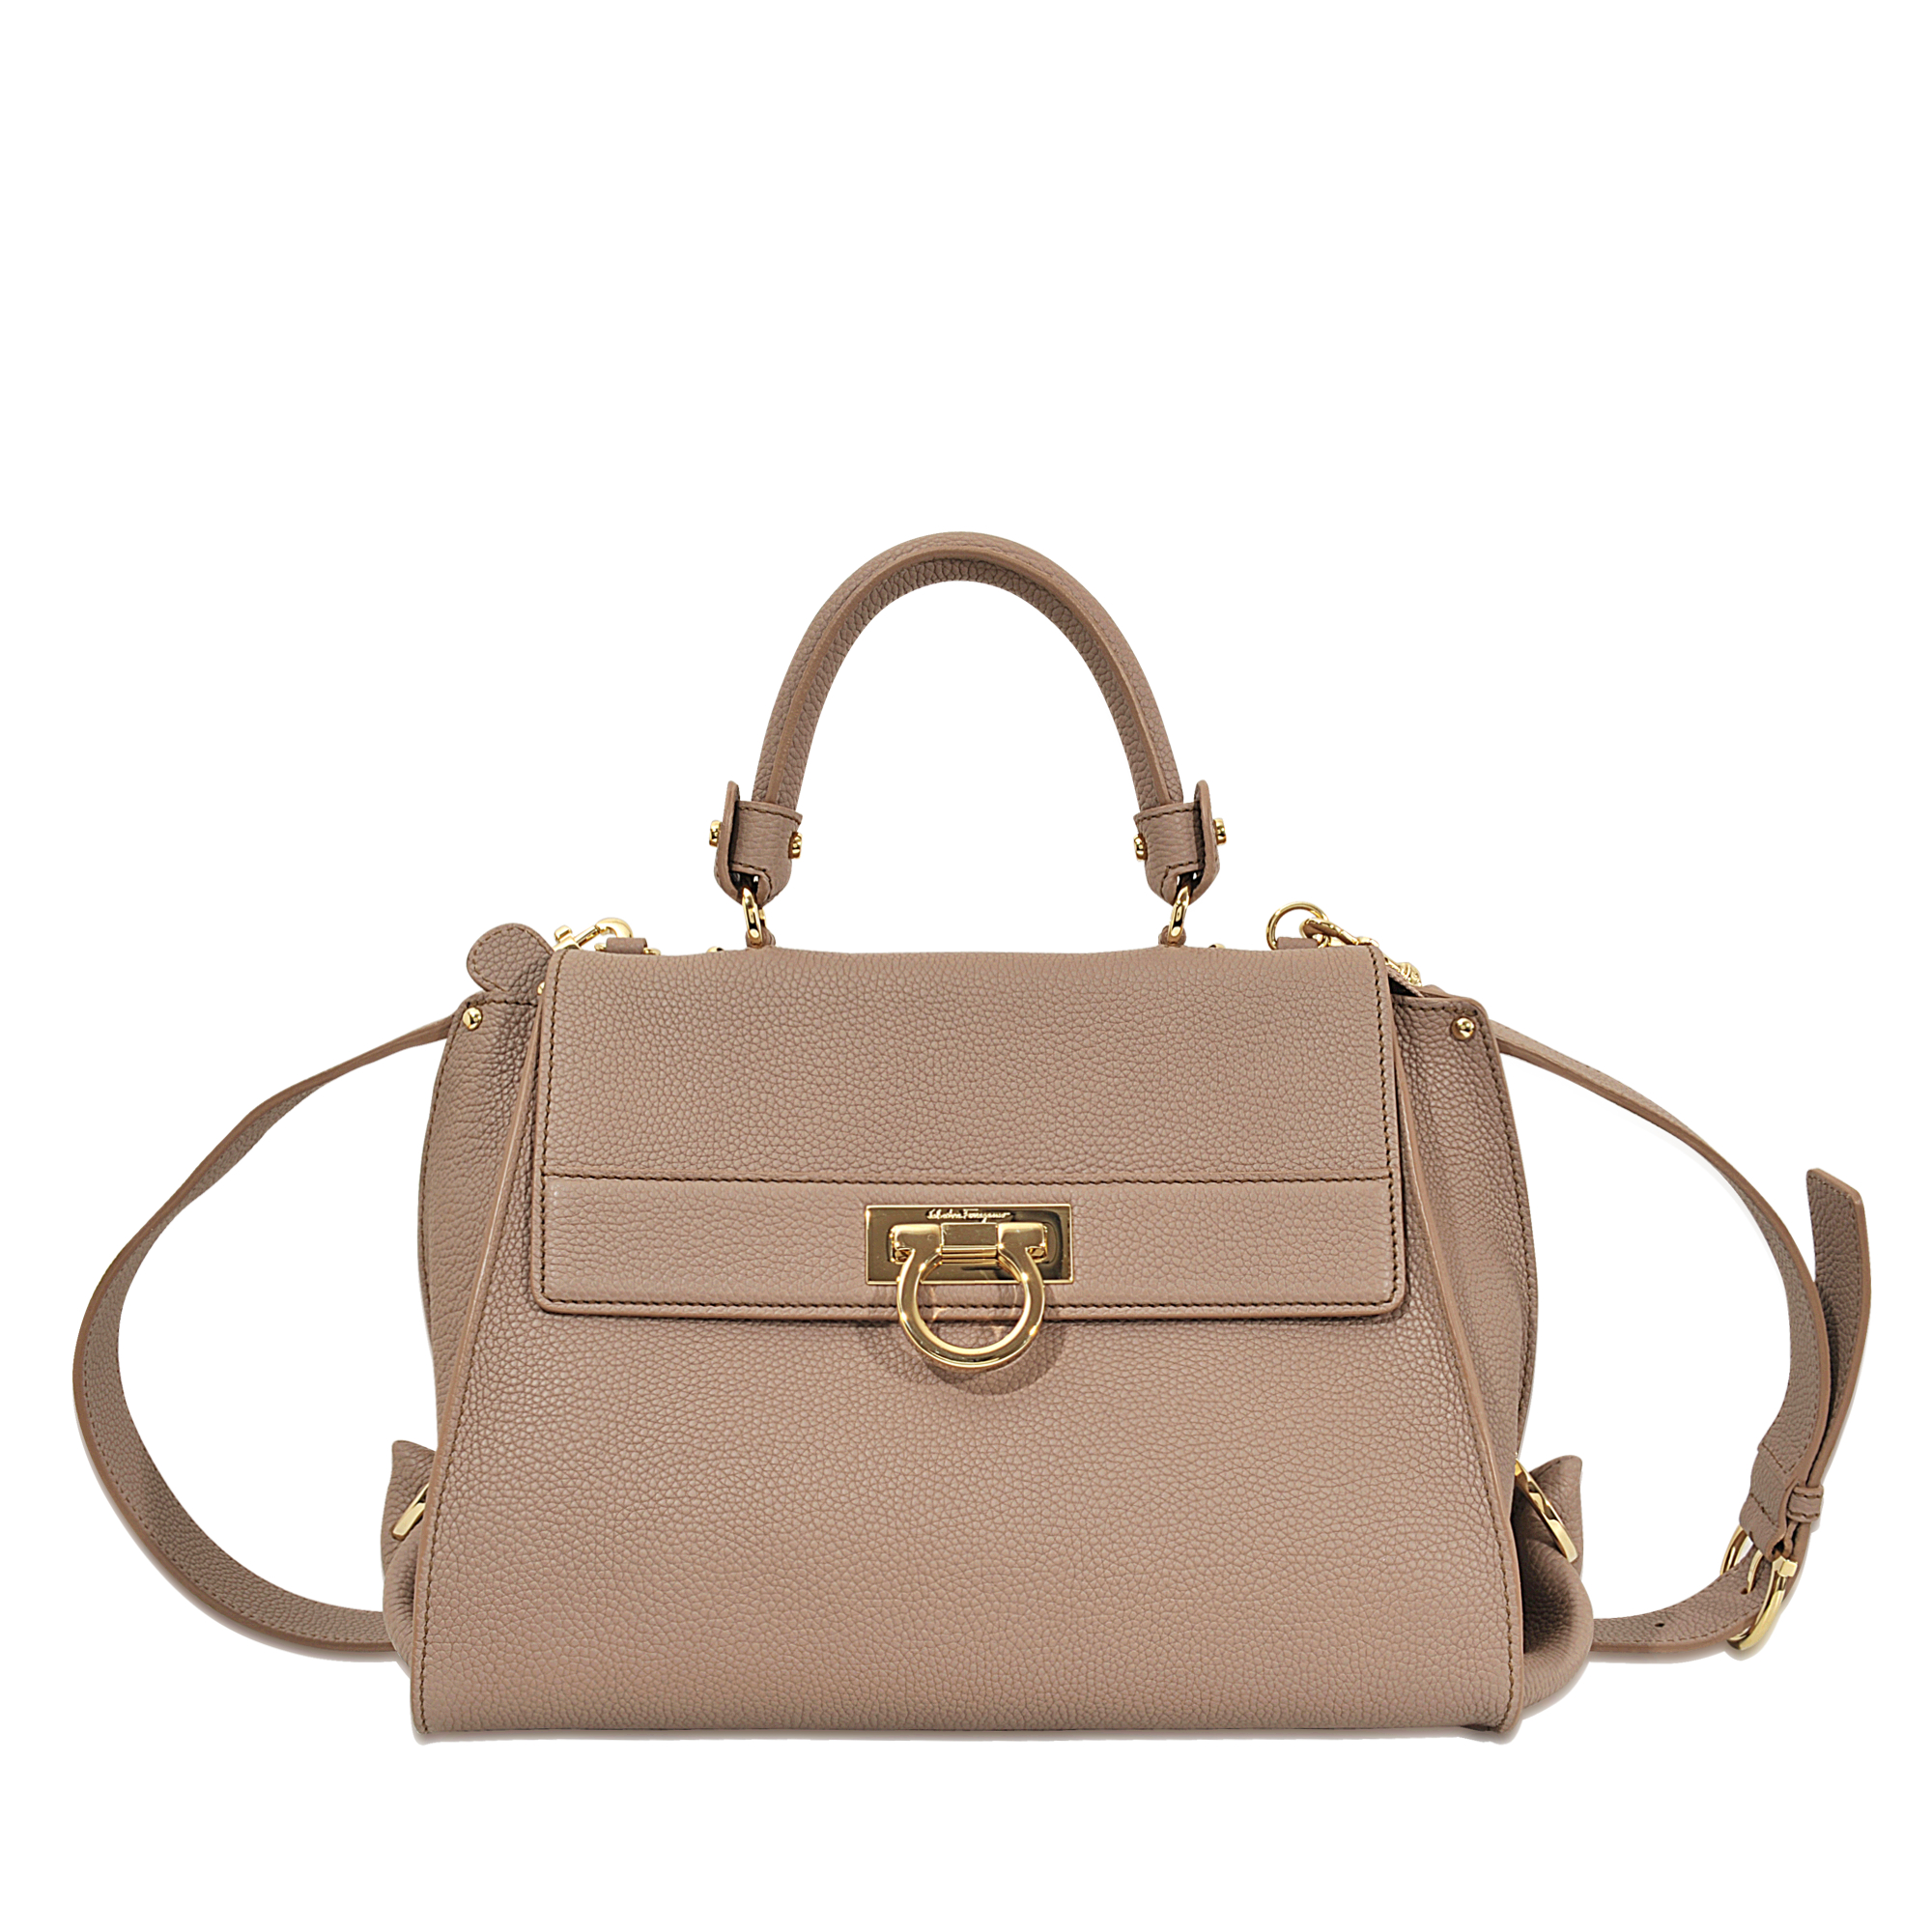 f78a39533a5f Lyst - Ferragamo Sofia Medium Top Handle Bag in Natural